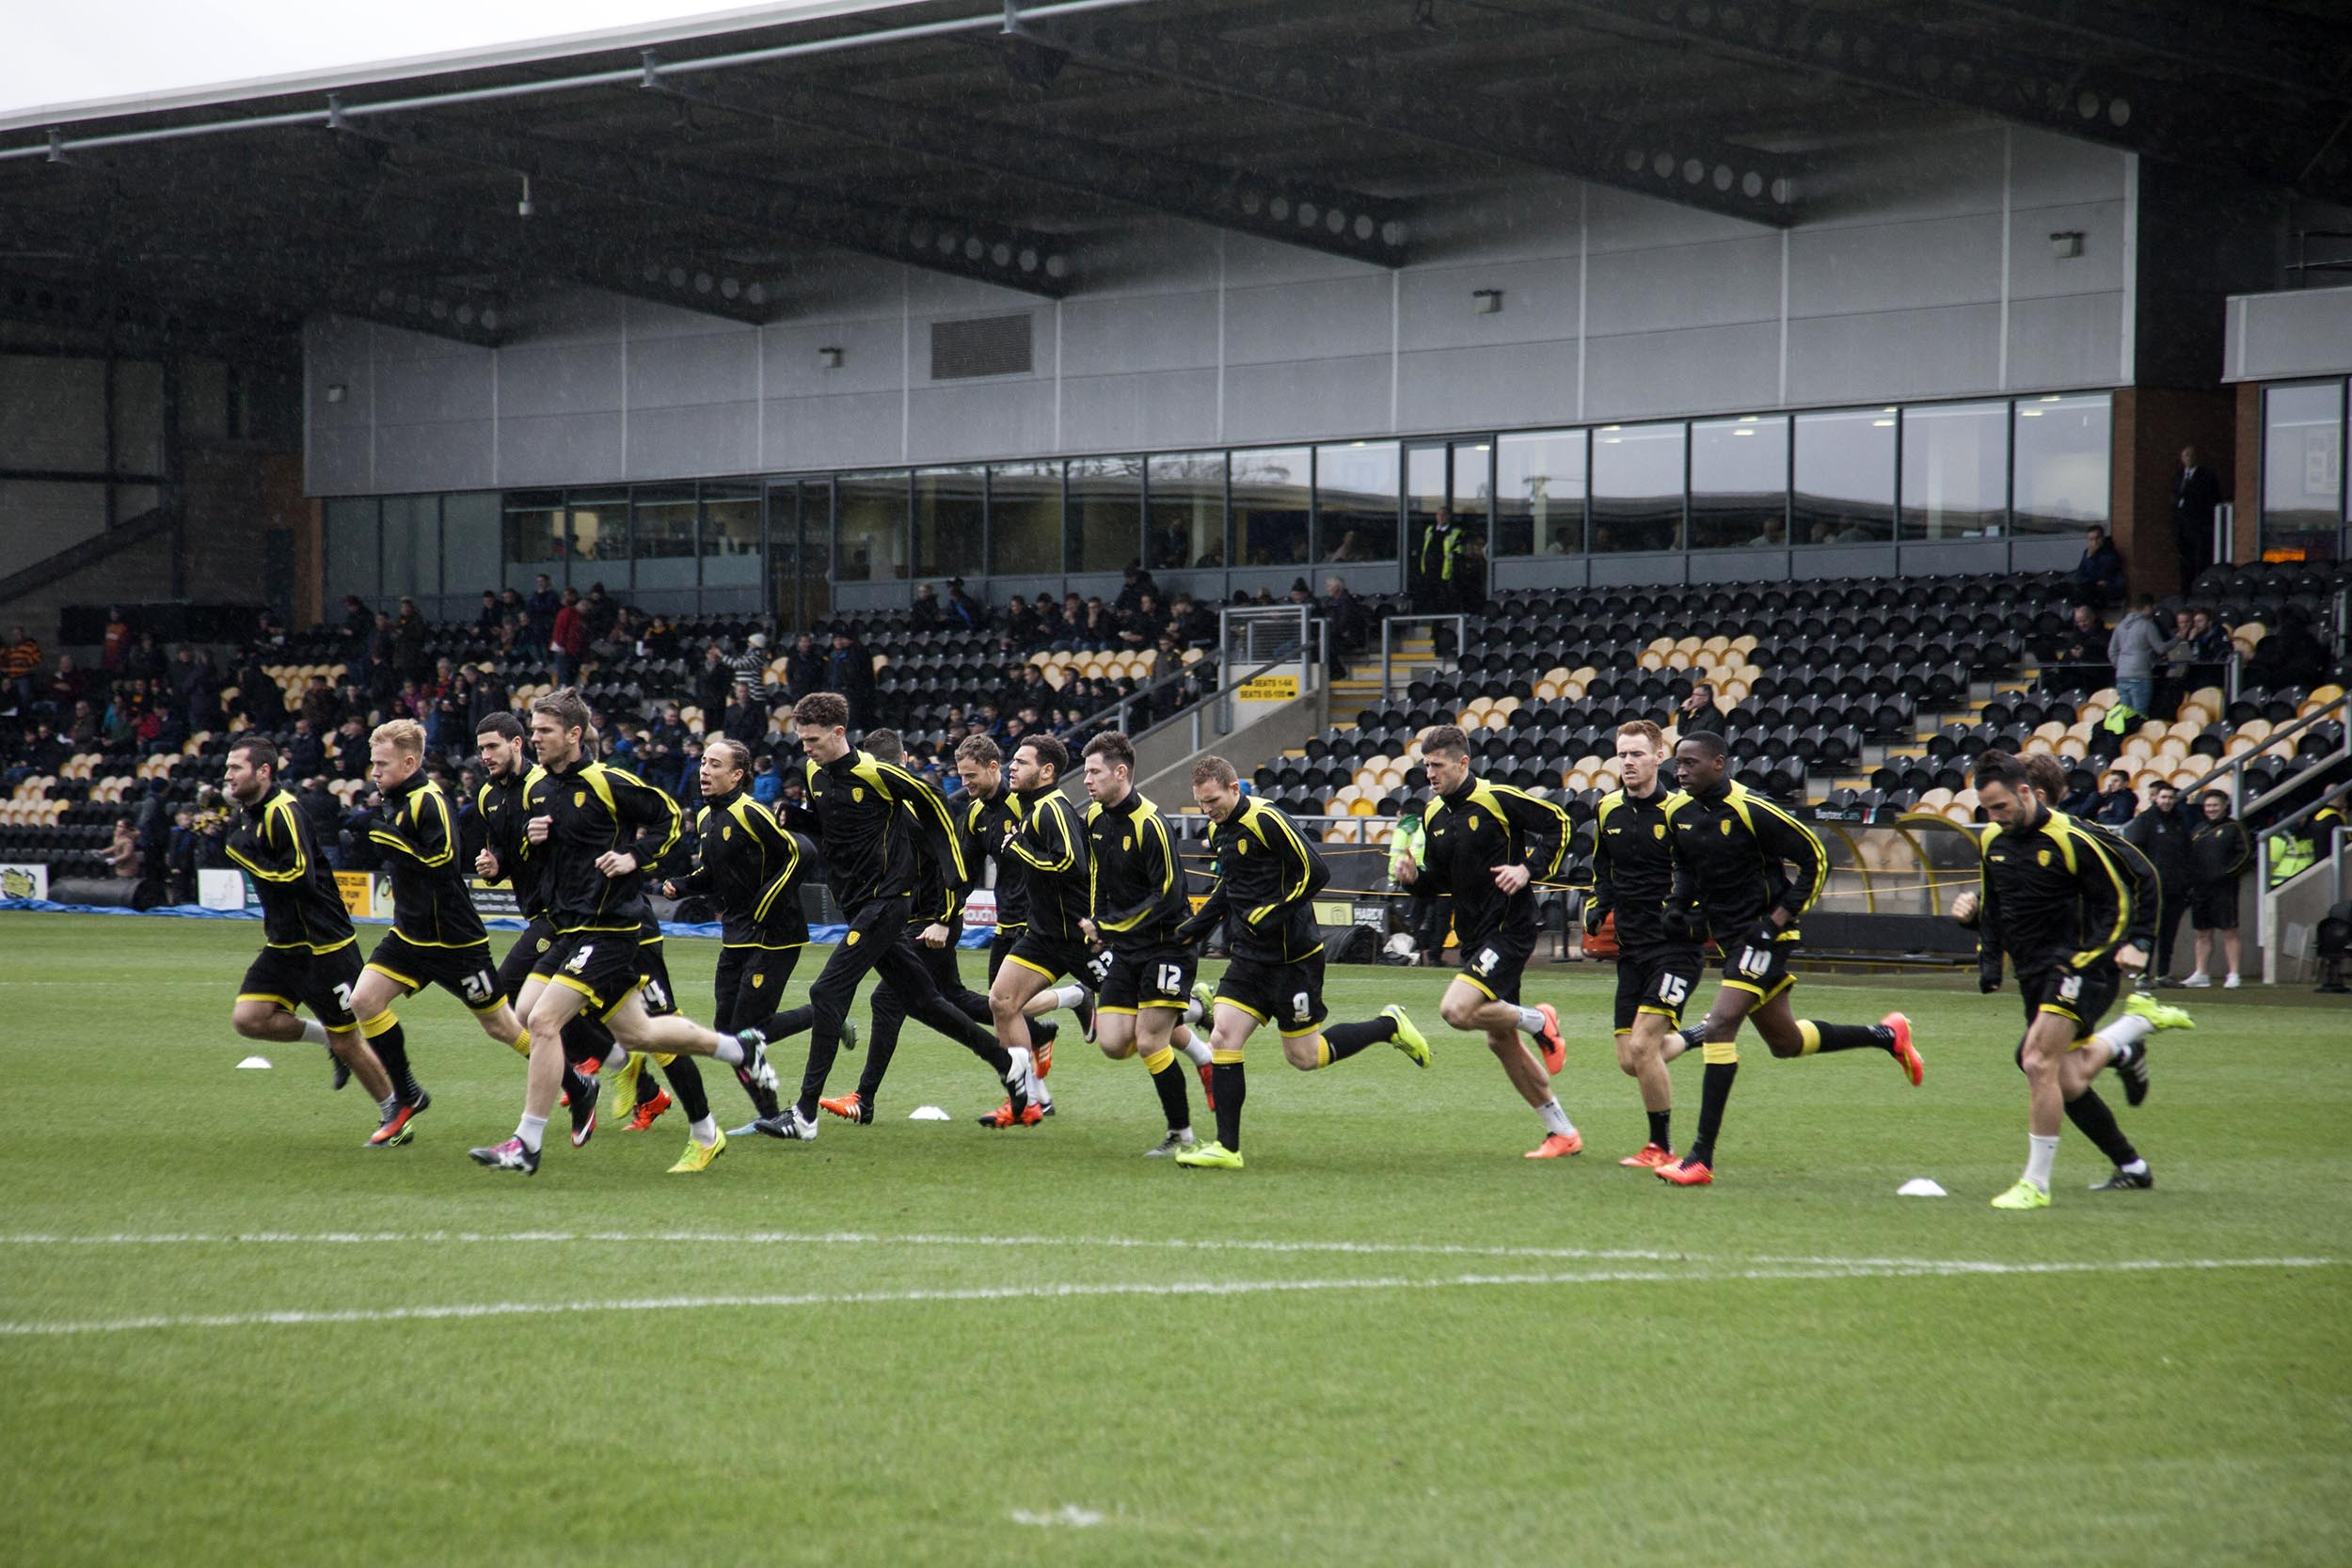 A documentary photograph of players warming up at Burton Albion  I was commissioned as documentary photographer by German football magazine 11 Freunde.